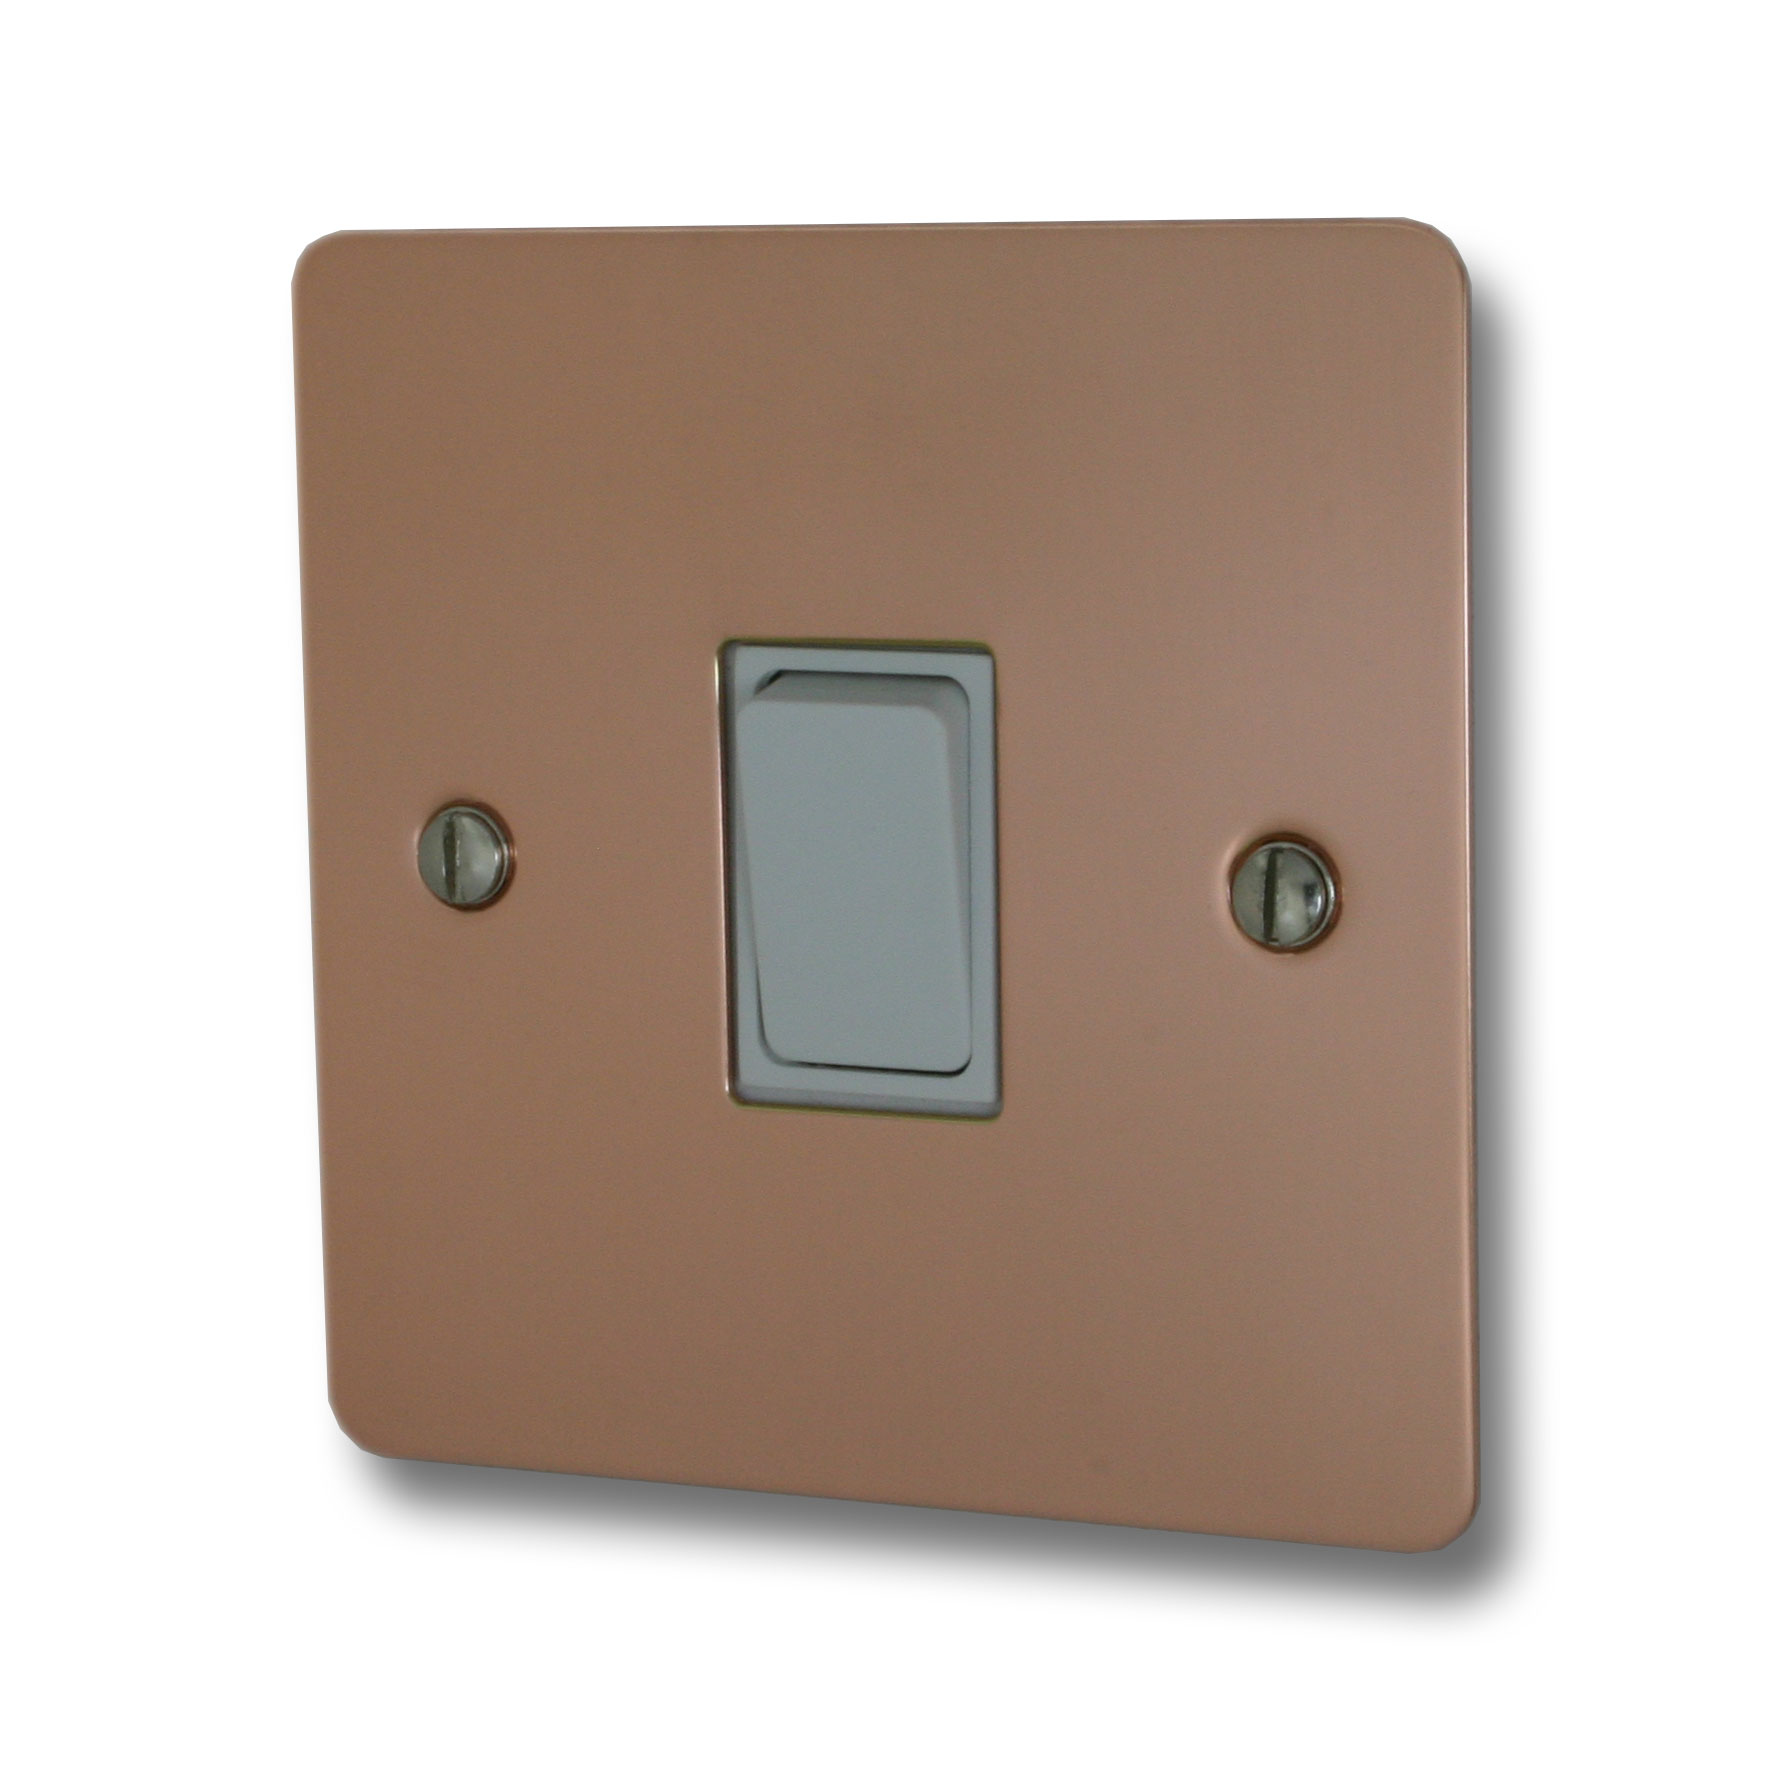 Copper Light Switch Plates G And H Brassware From Socket Store